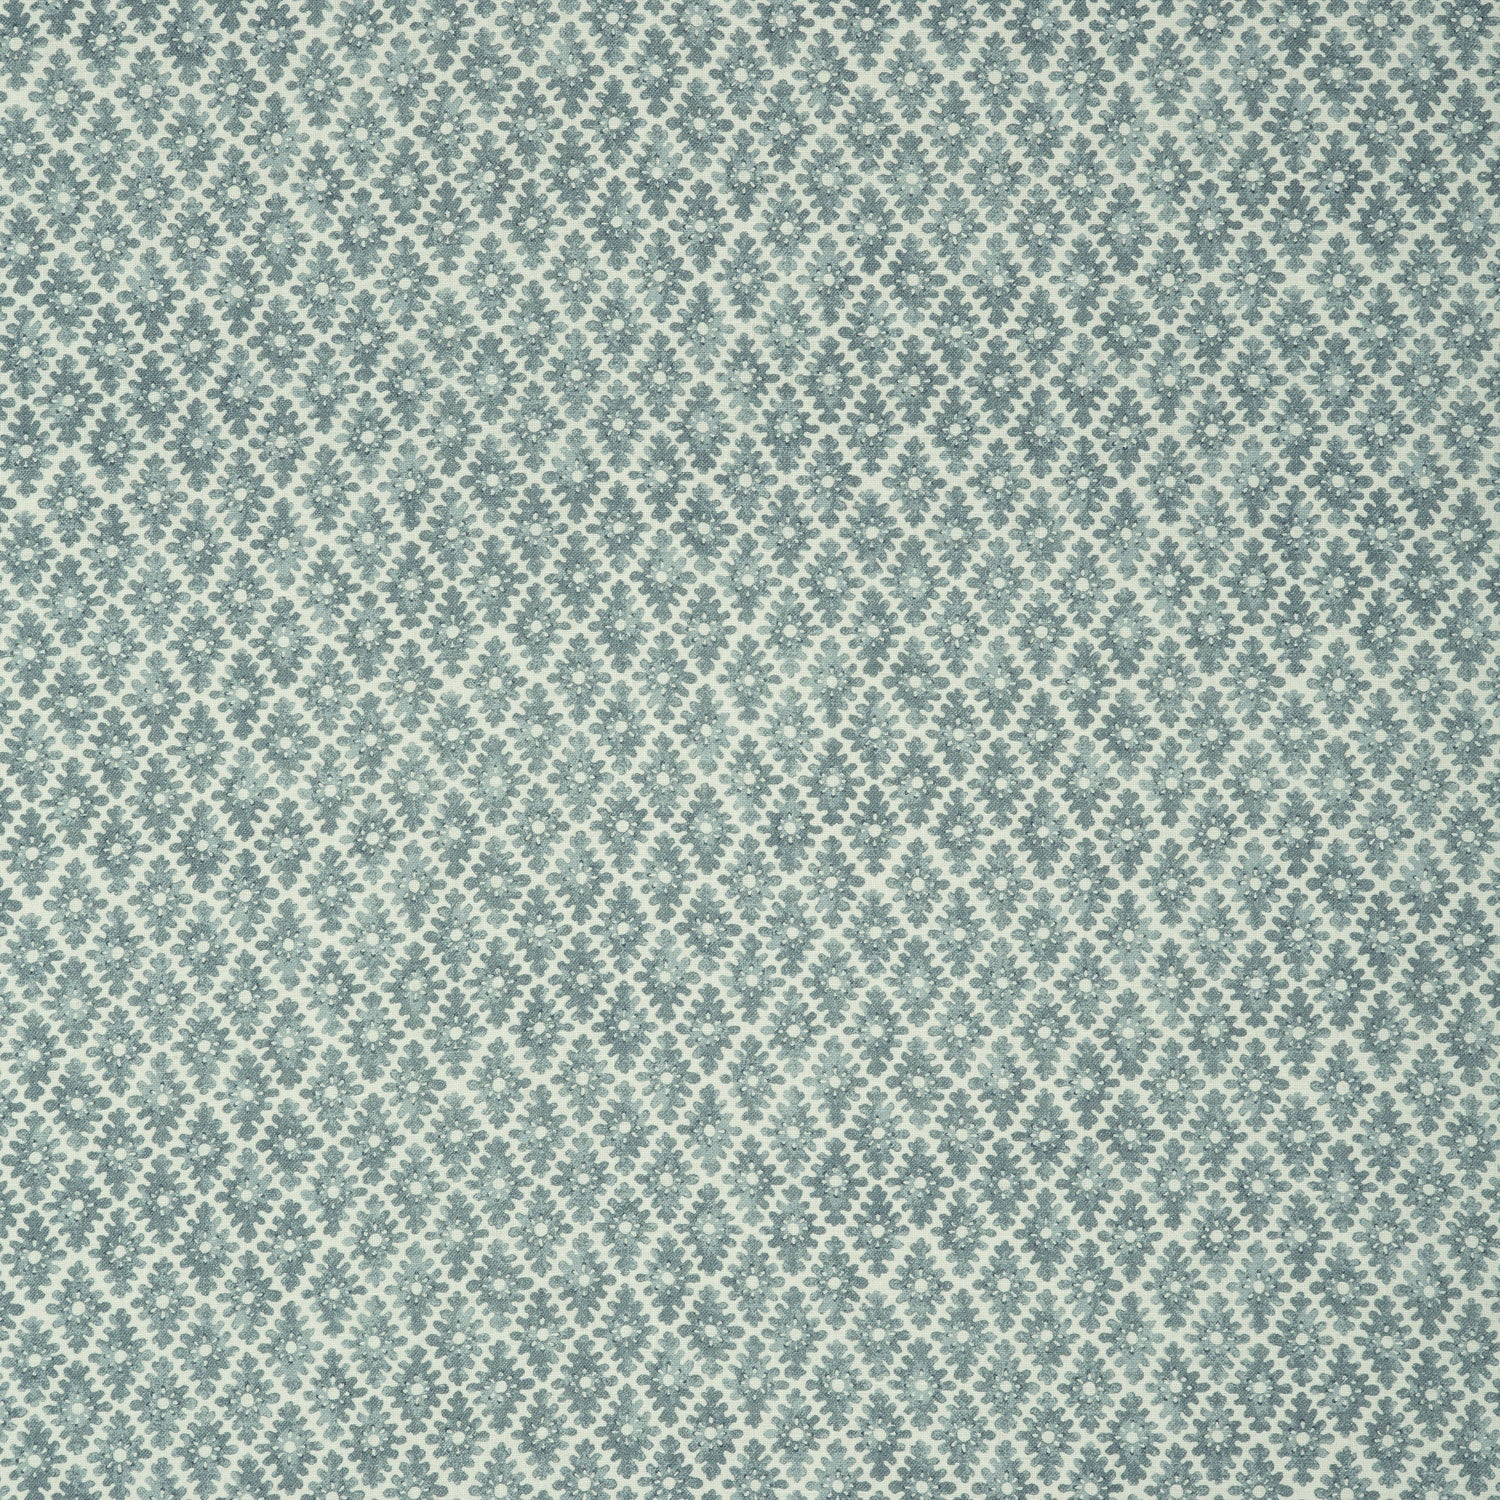 Fabric sample of a teal and neutral printed linen fabric for curtains and upholstery